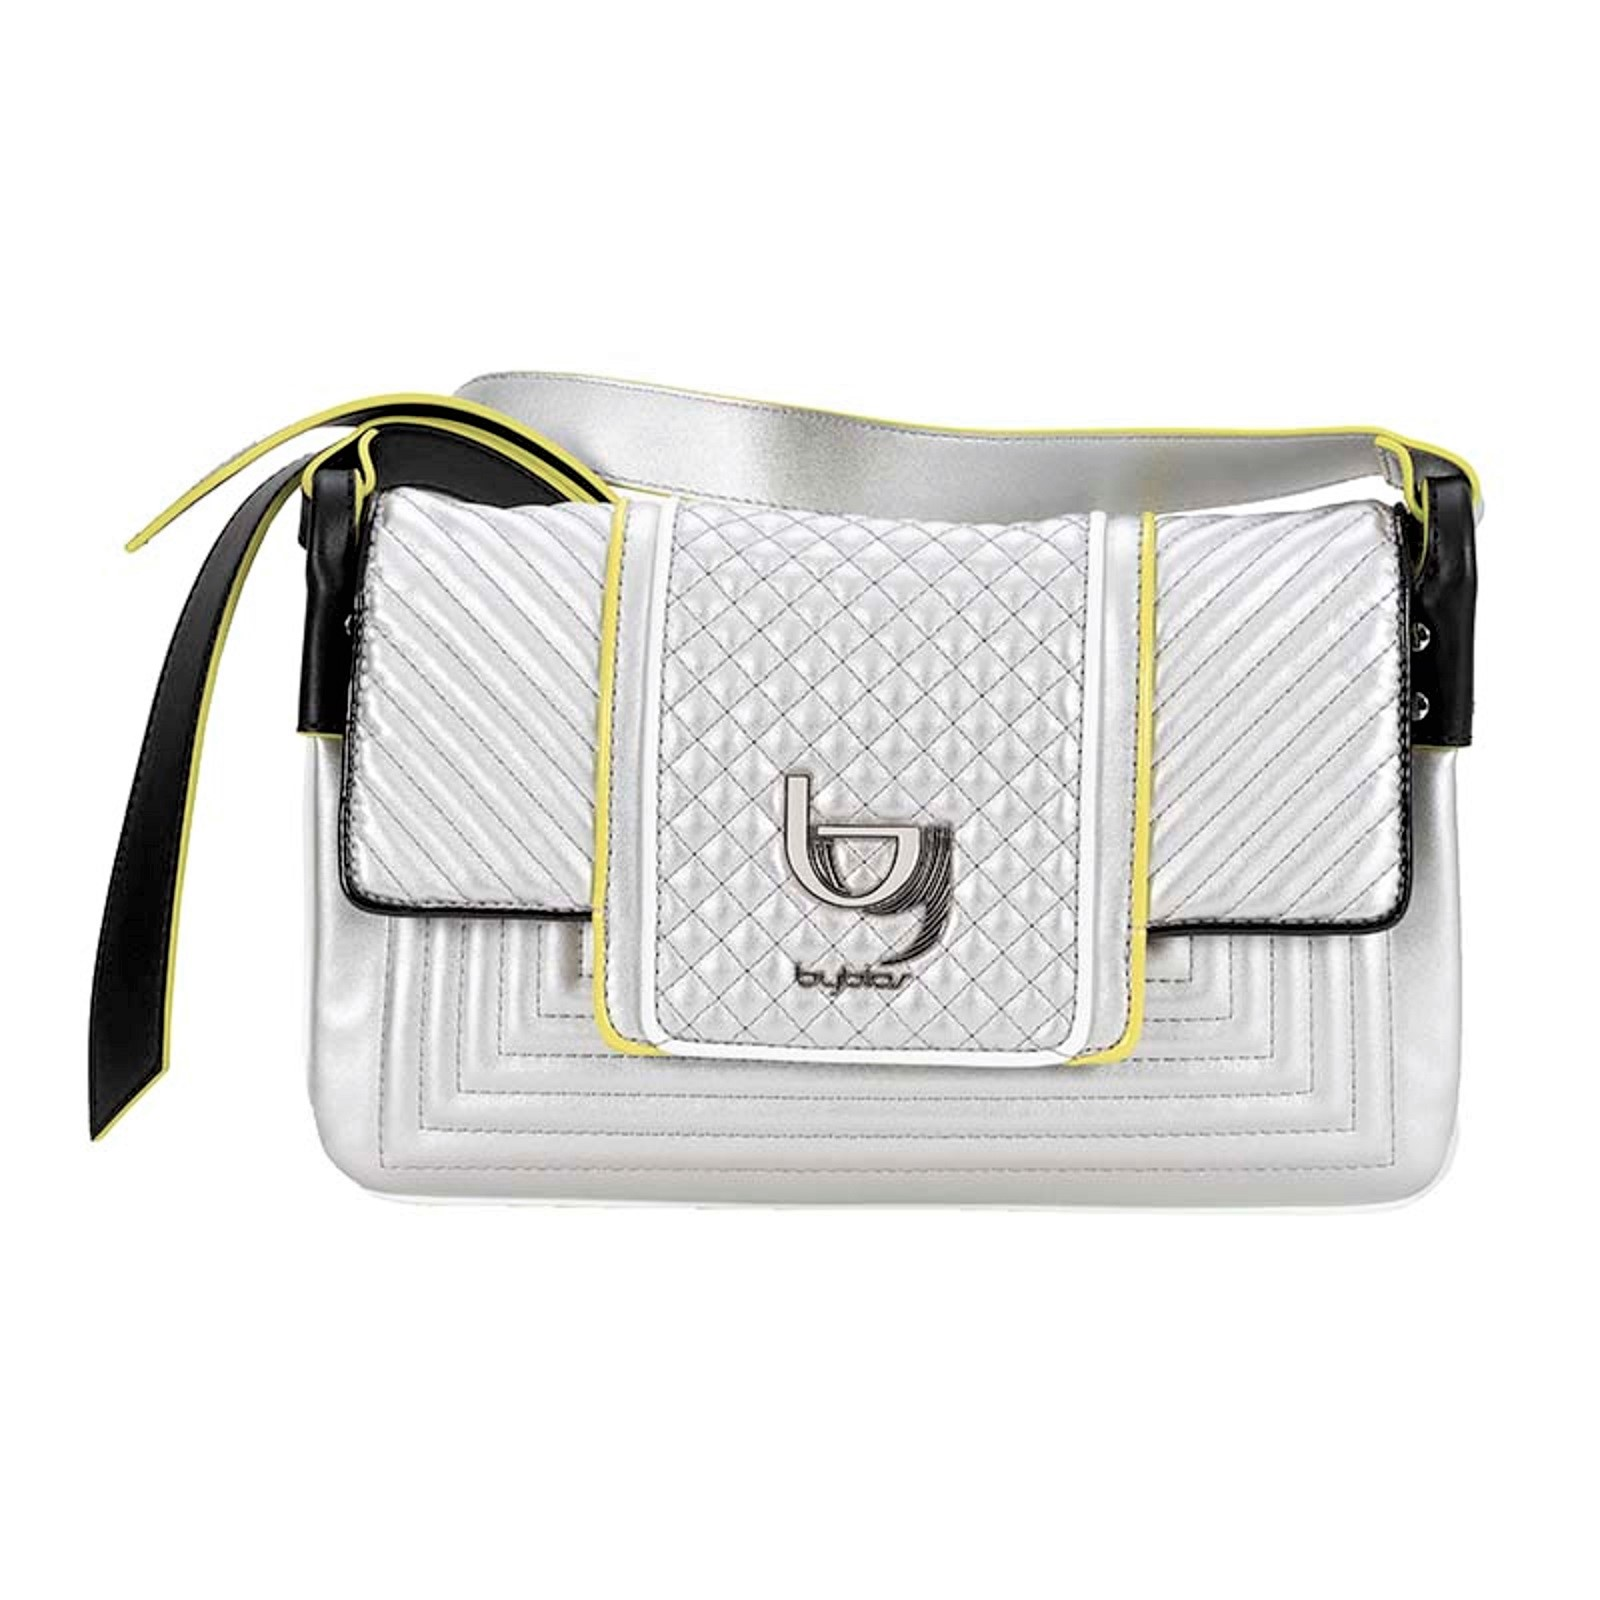 BYBLOS BORSA POCHETTE DONNA 2WB0055 QUINCY SHOULDER BAG SMALL TRACOLLINA WHITE